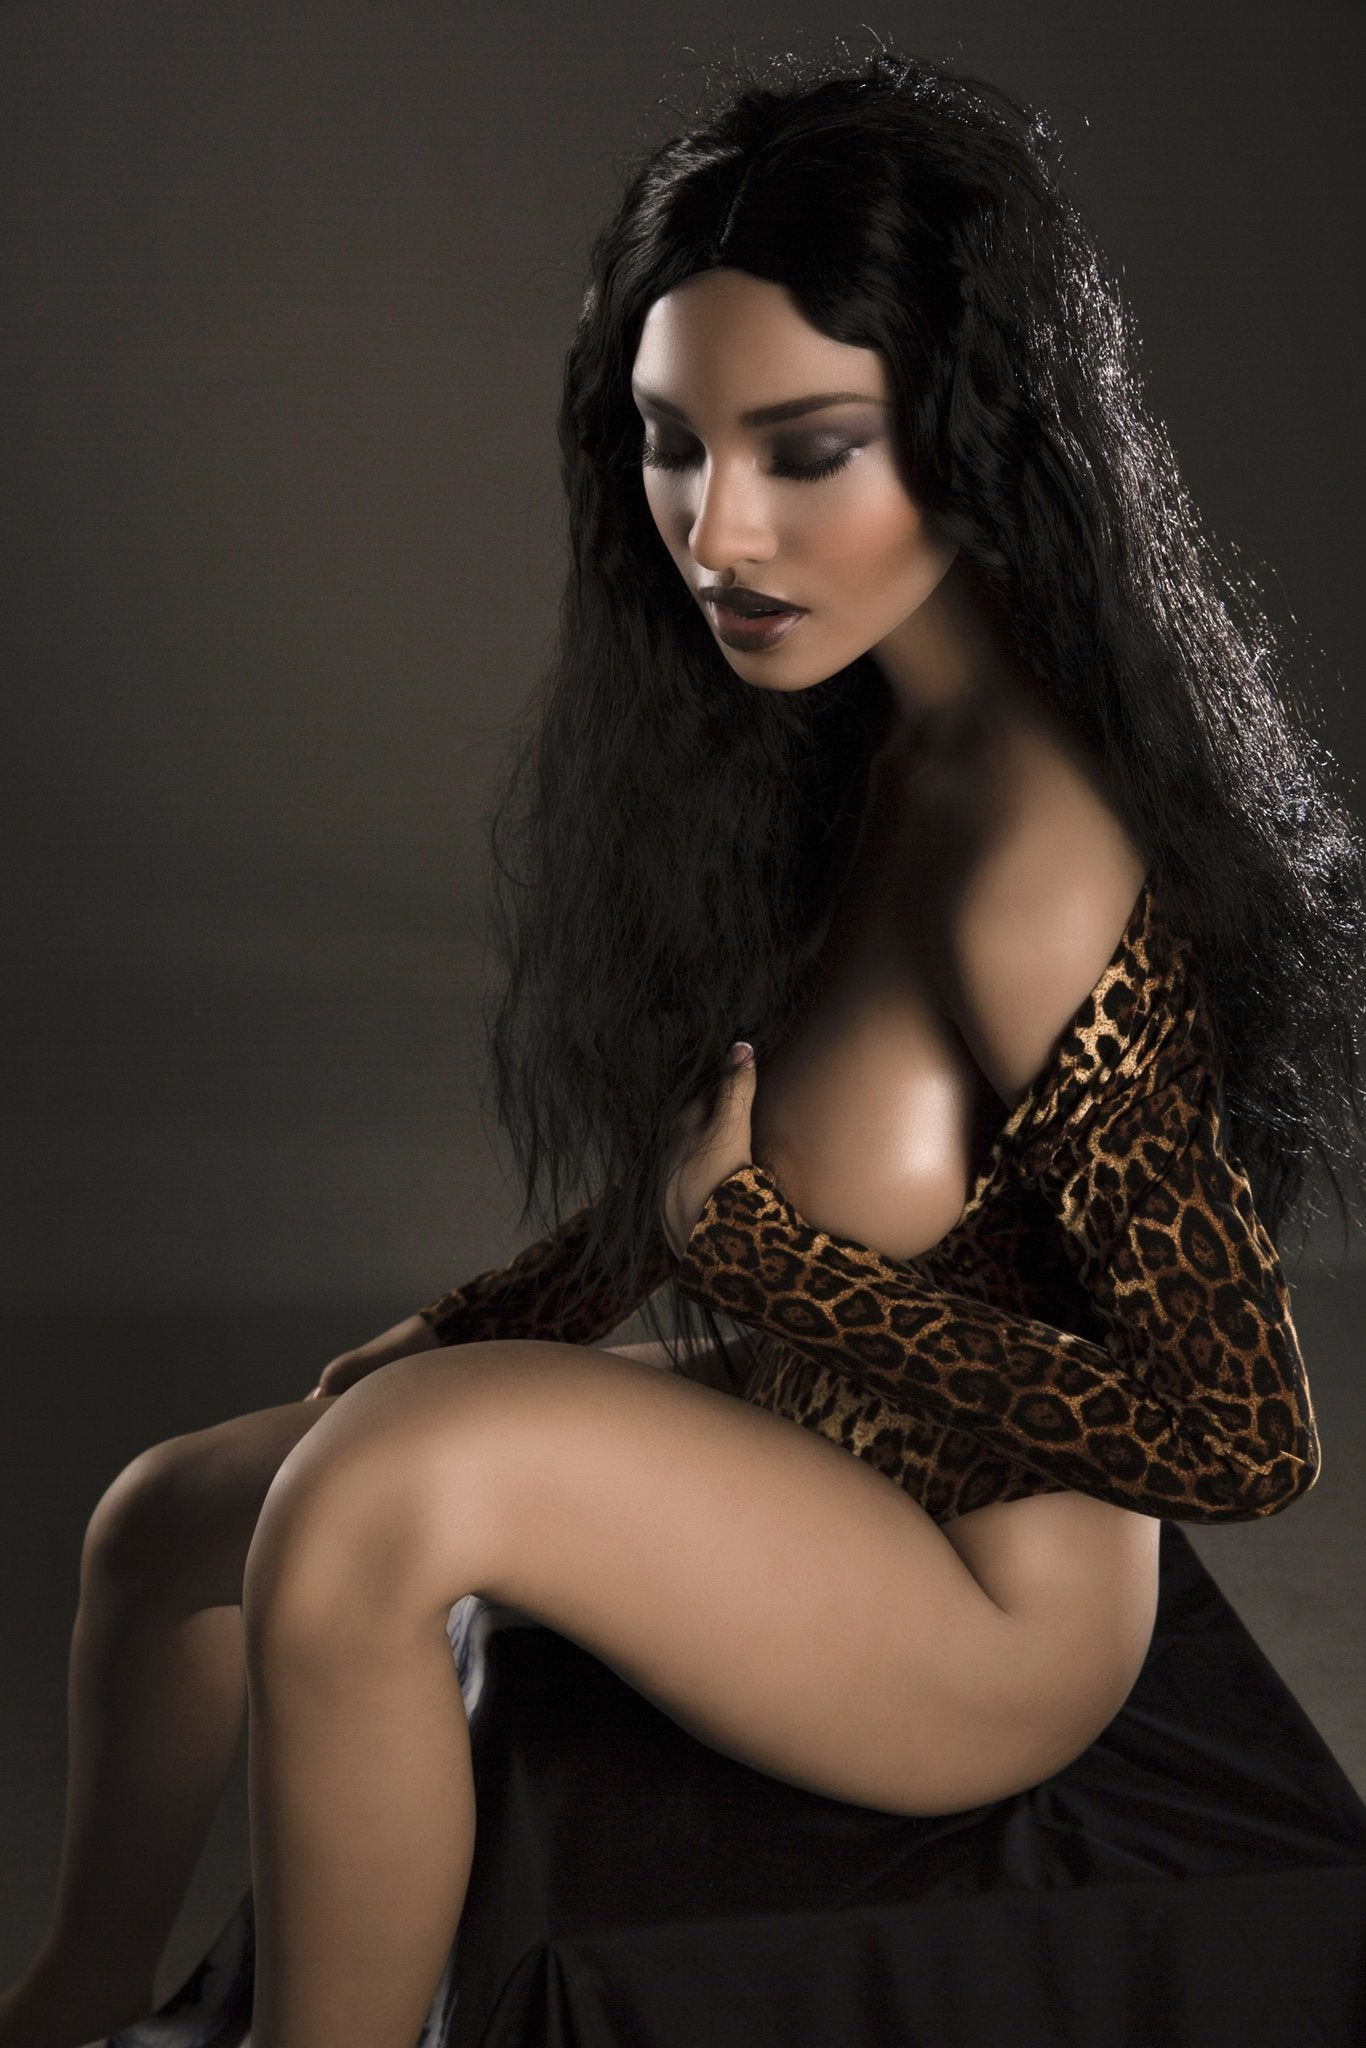 kaaren 161cm black hair brown medium tits athletic silicone sex doll(3)